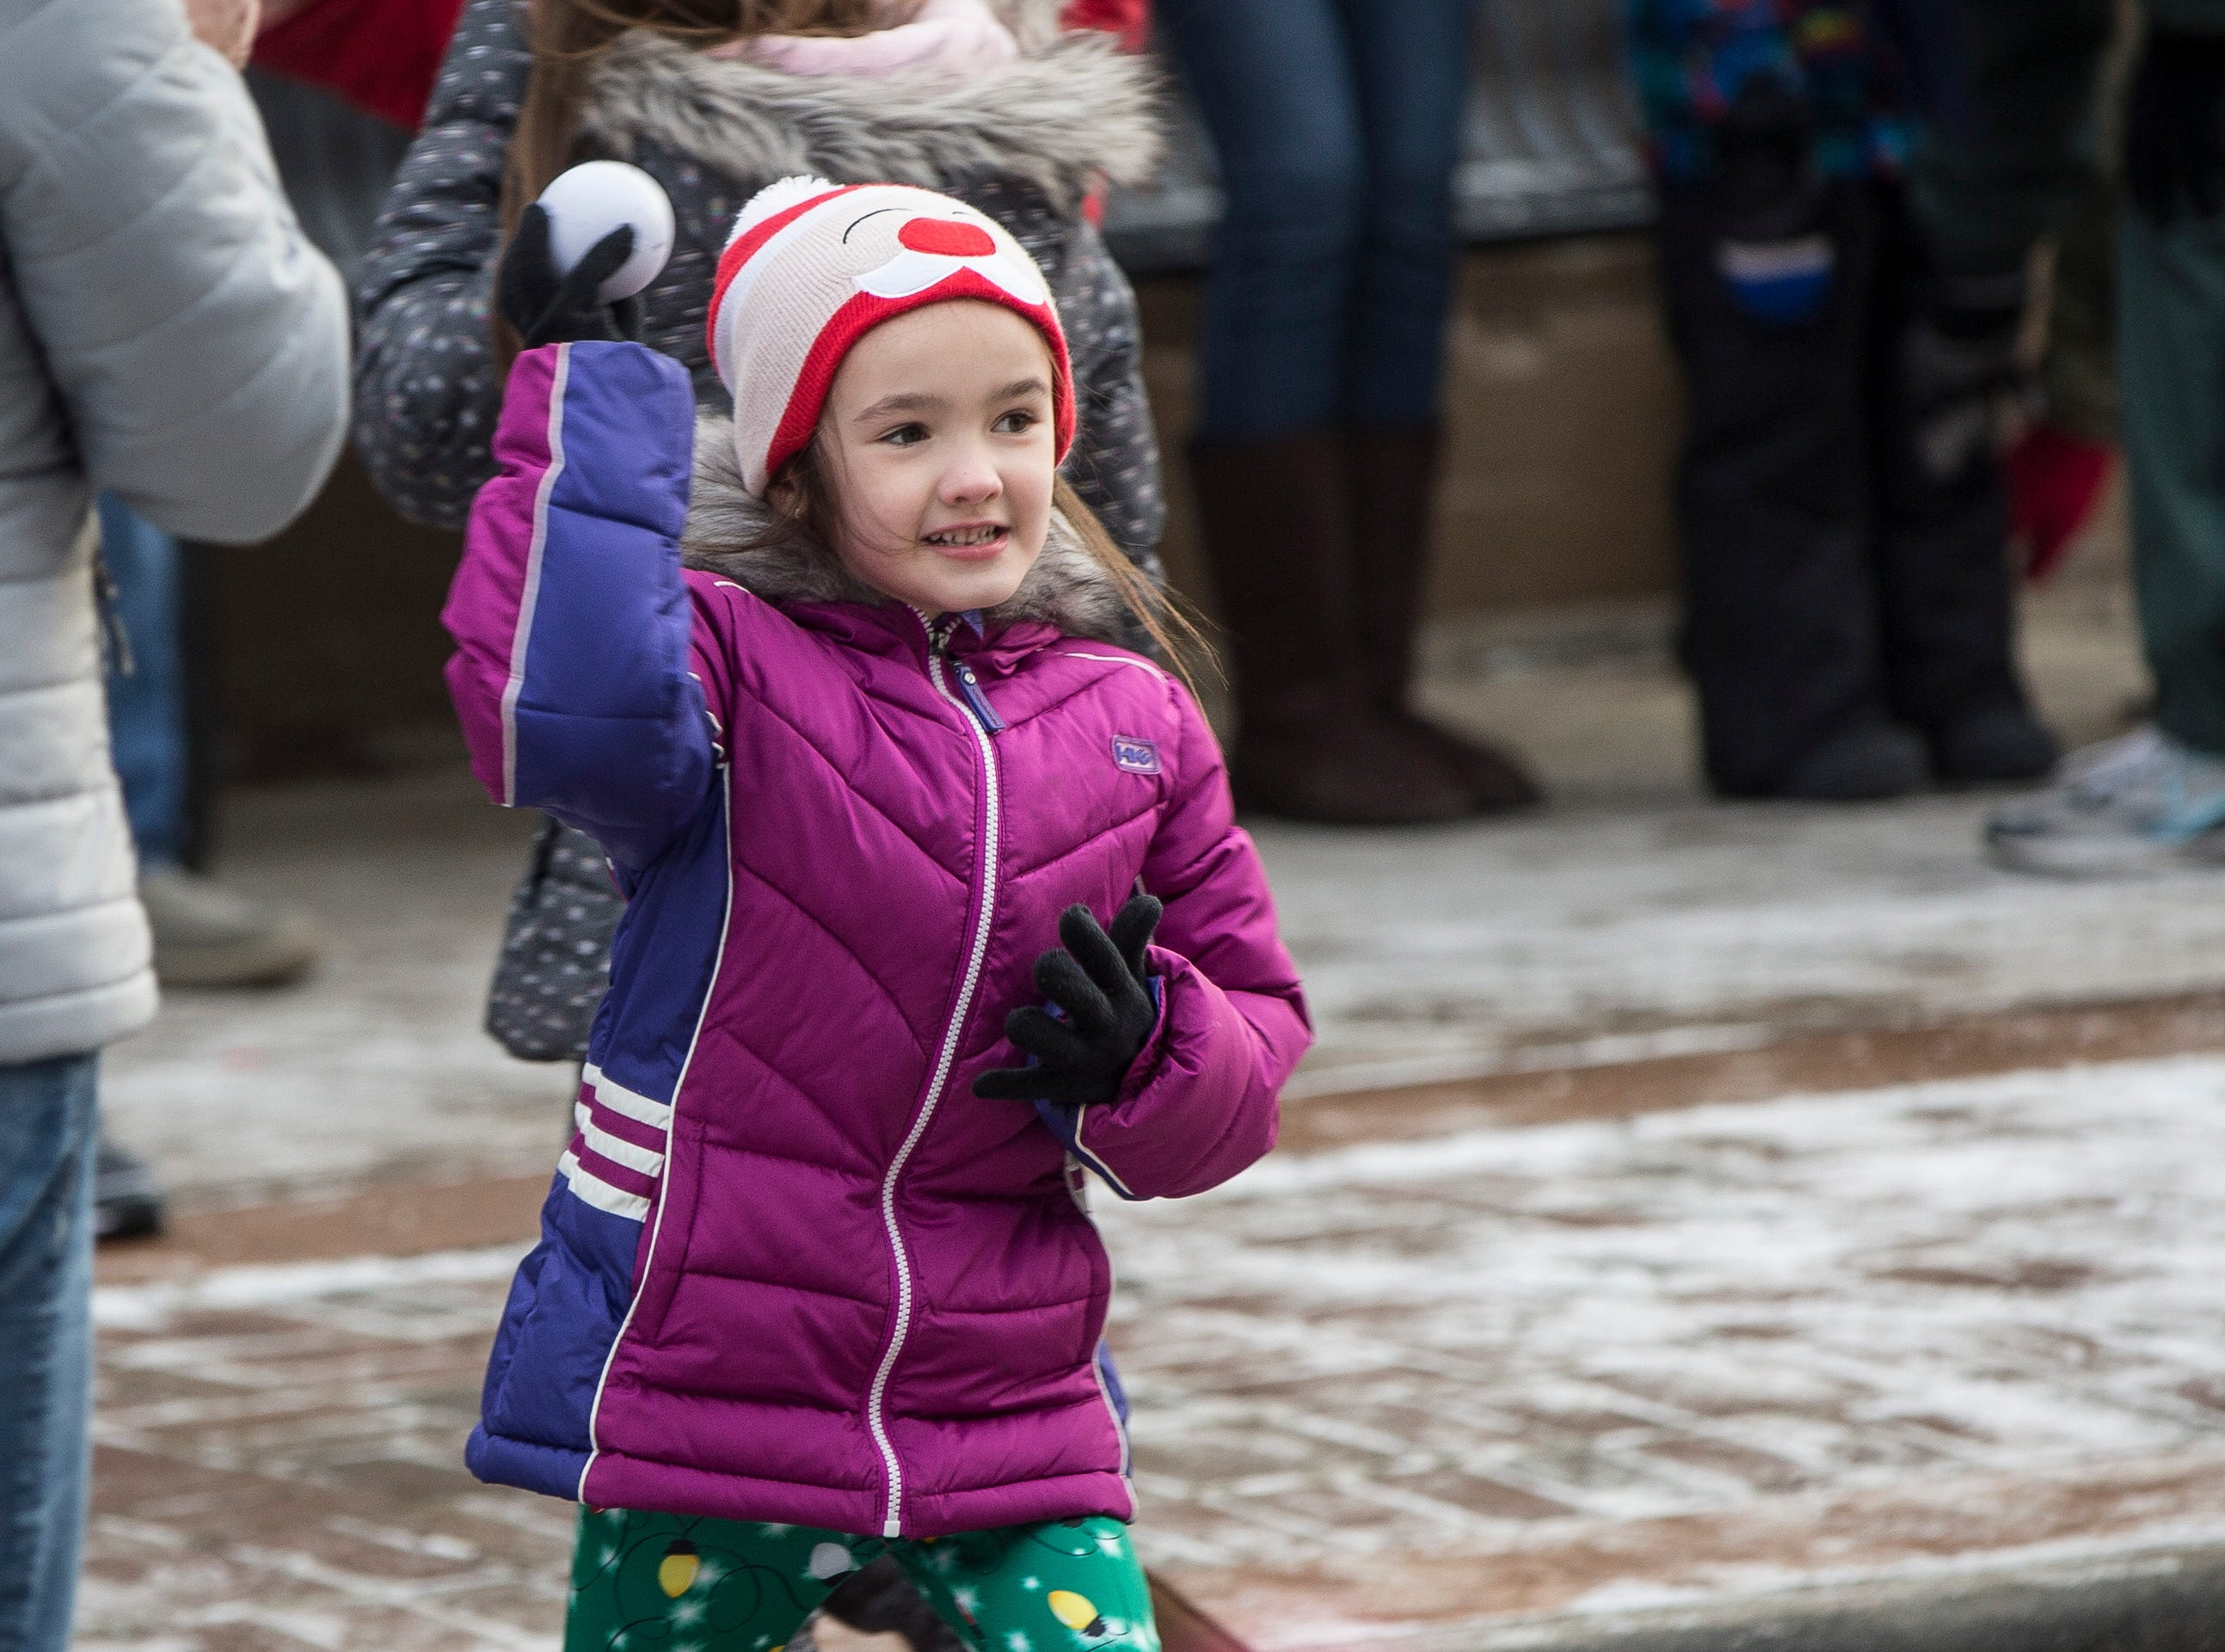 Dozens of children take part in the annual snowball fight Saturday afternoon in downtown Yorktown for the Luminary Festival.